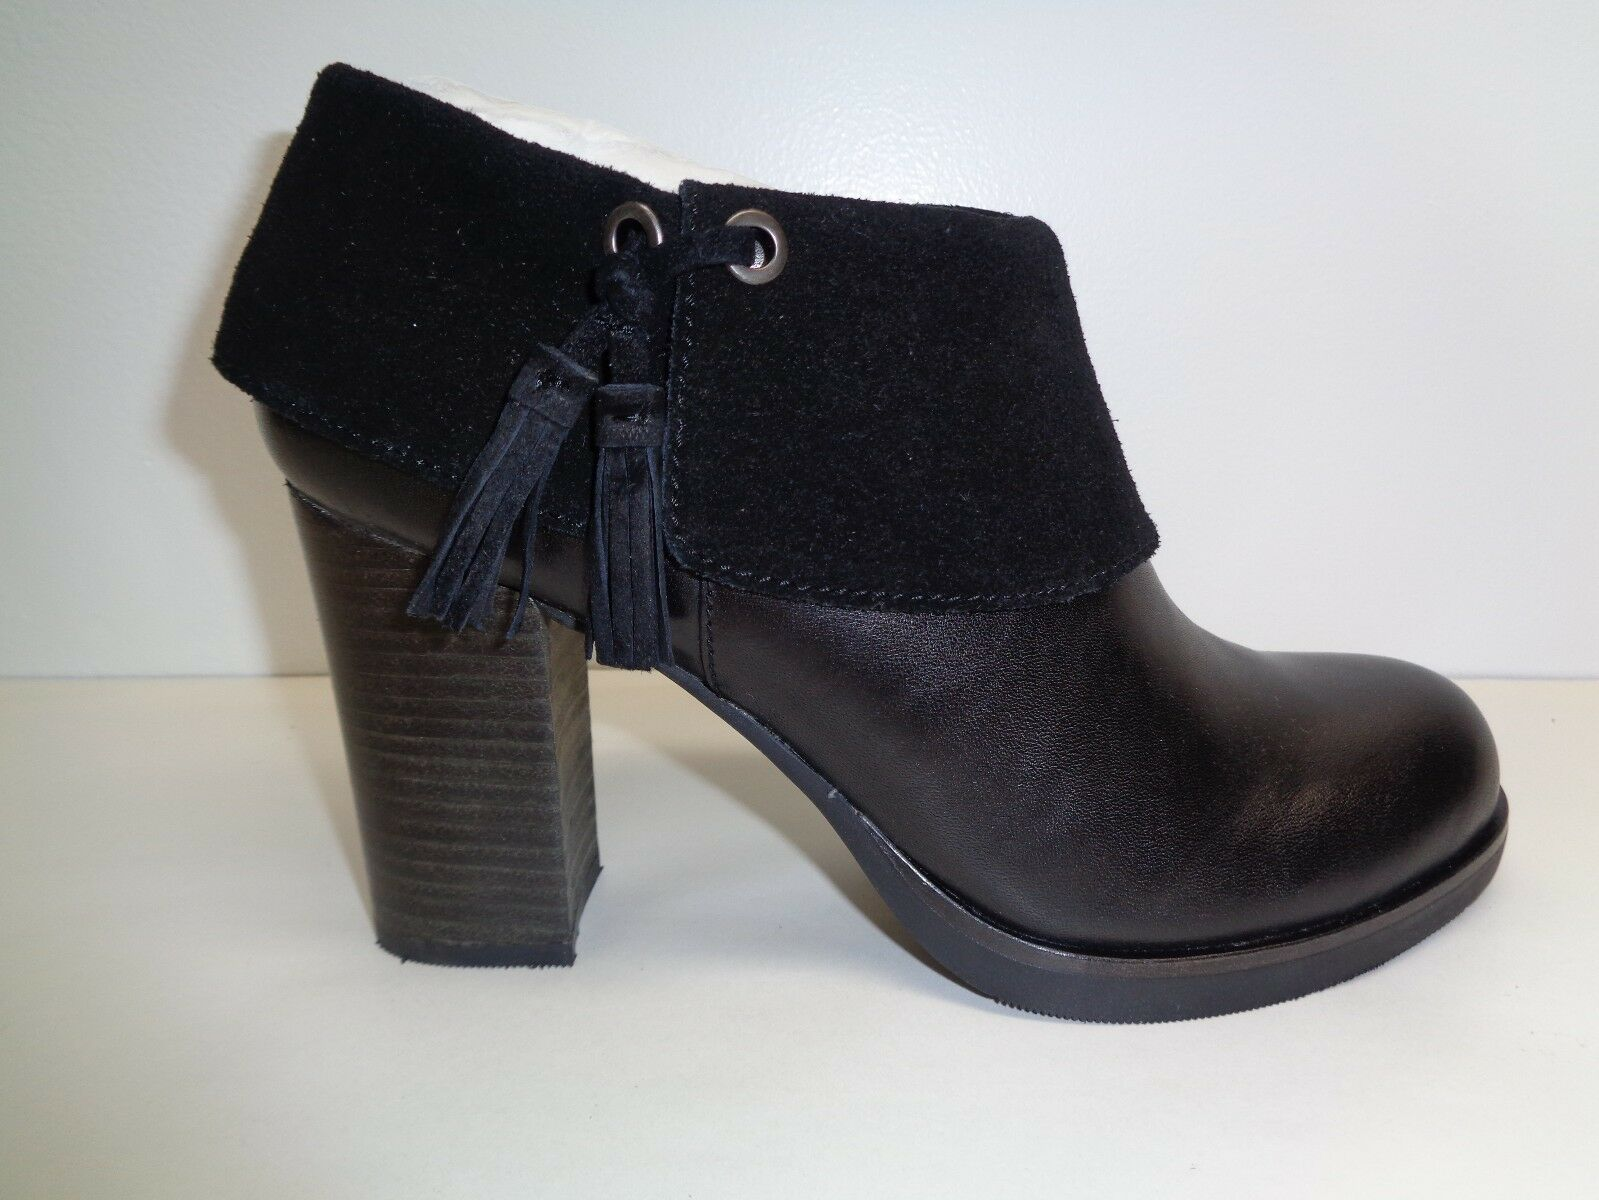 Tommy Bahama Size 6.5 M LENALUNA Black Leather Ankle Boots New Womens Shoes